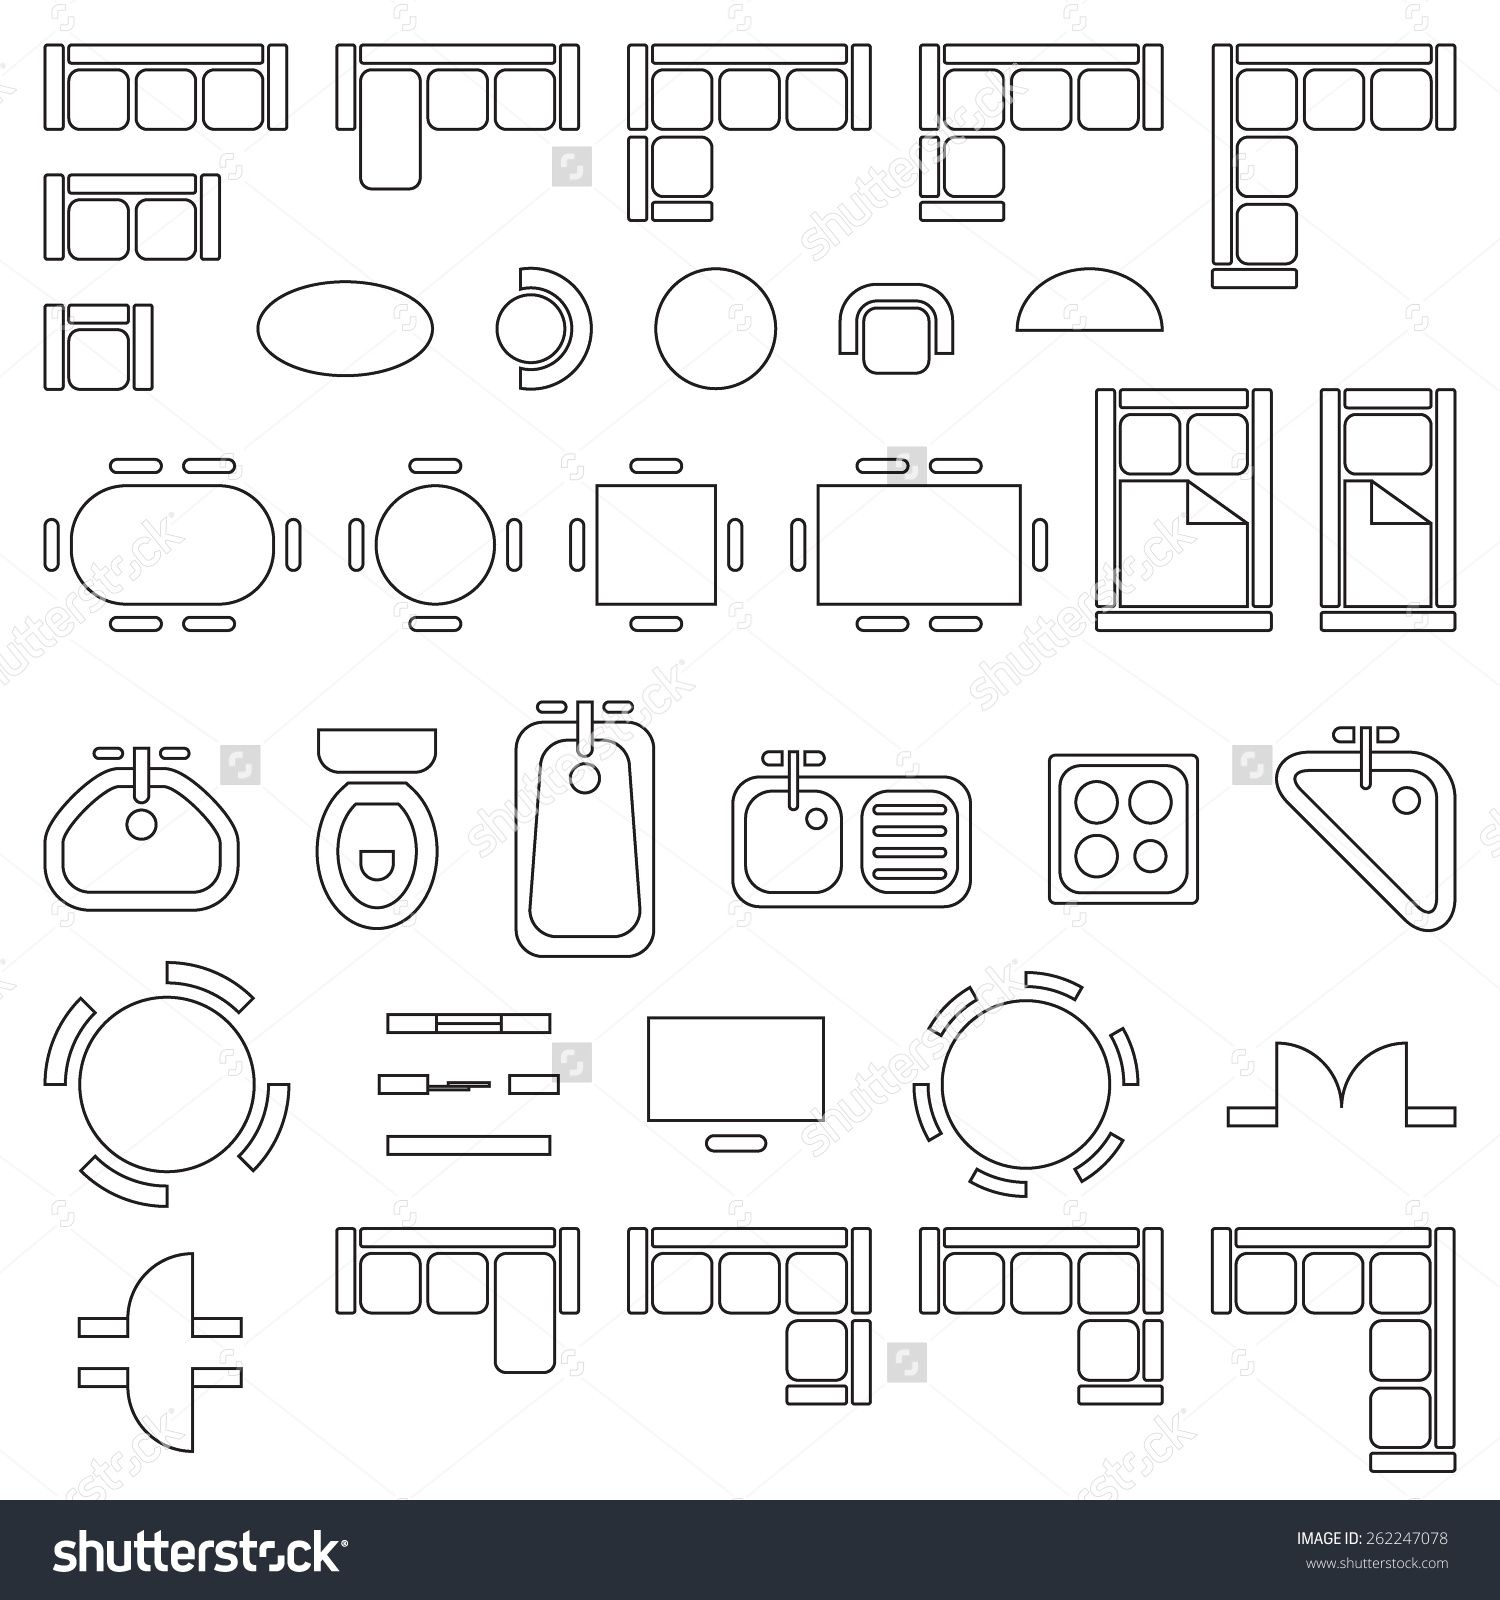 medium resolution of standard furniture symbols in architecture plans icons set save to a lightbox dining room centerpieces upholstered